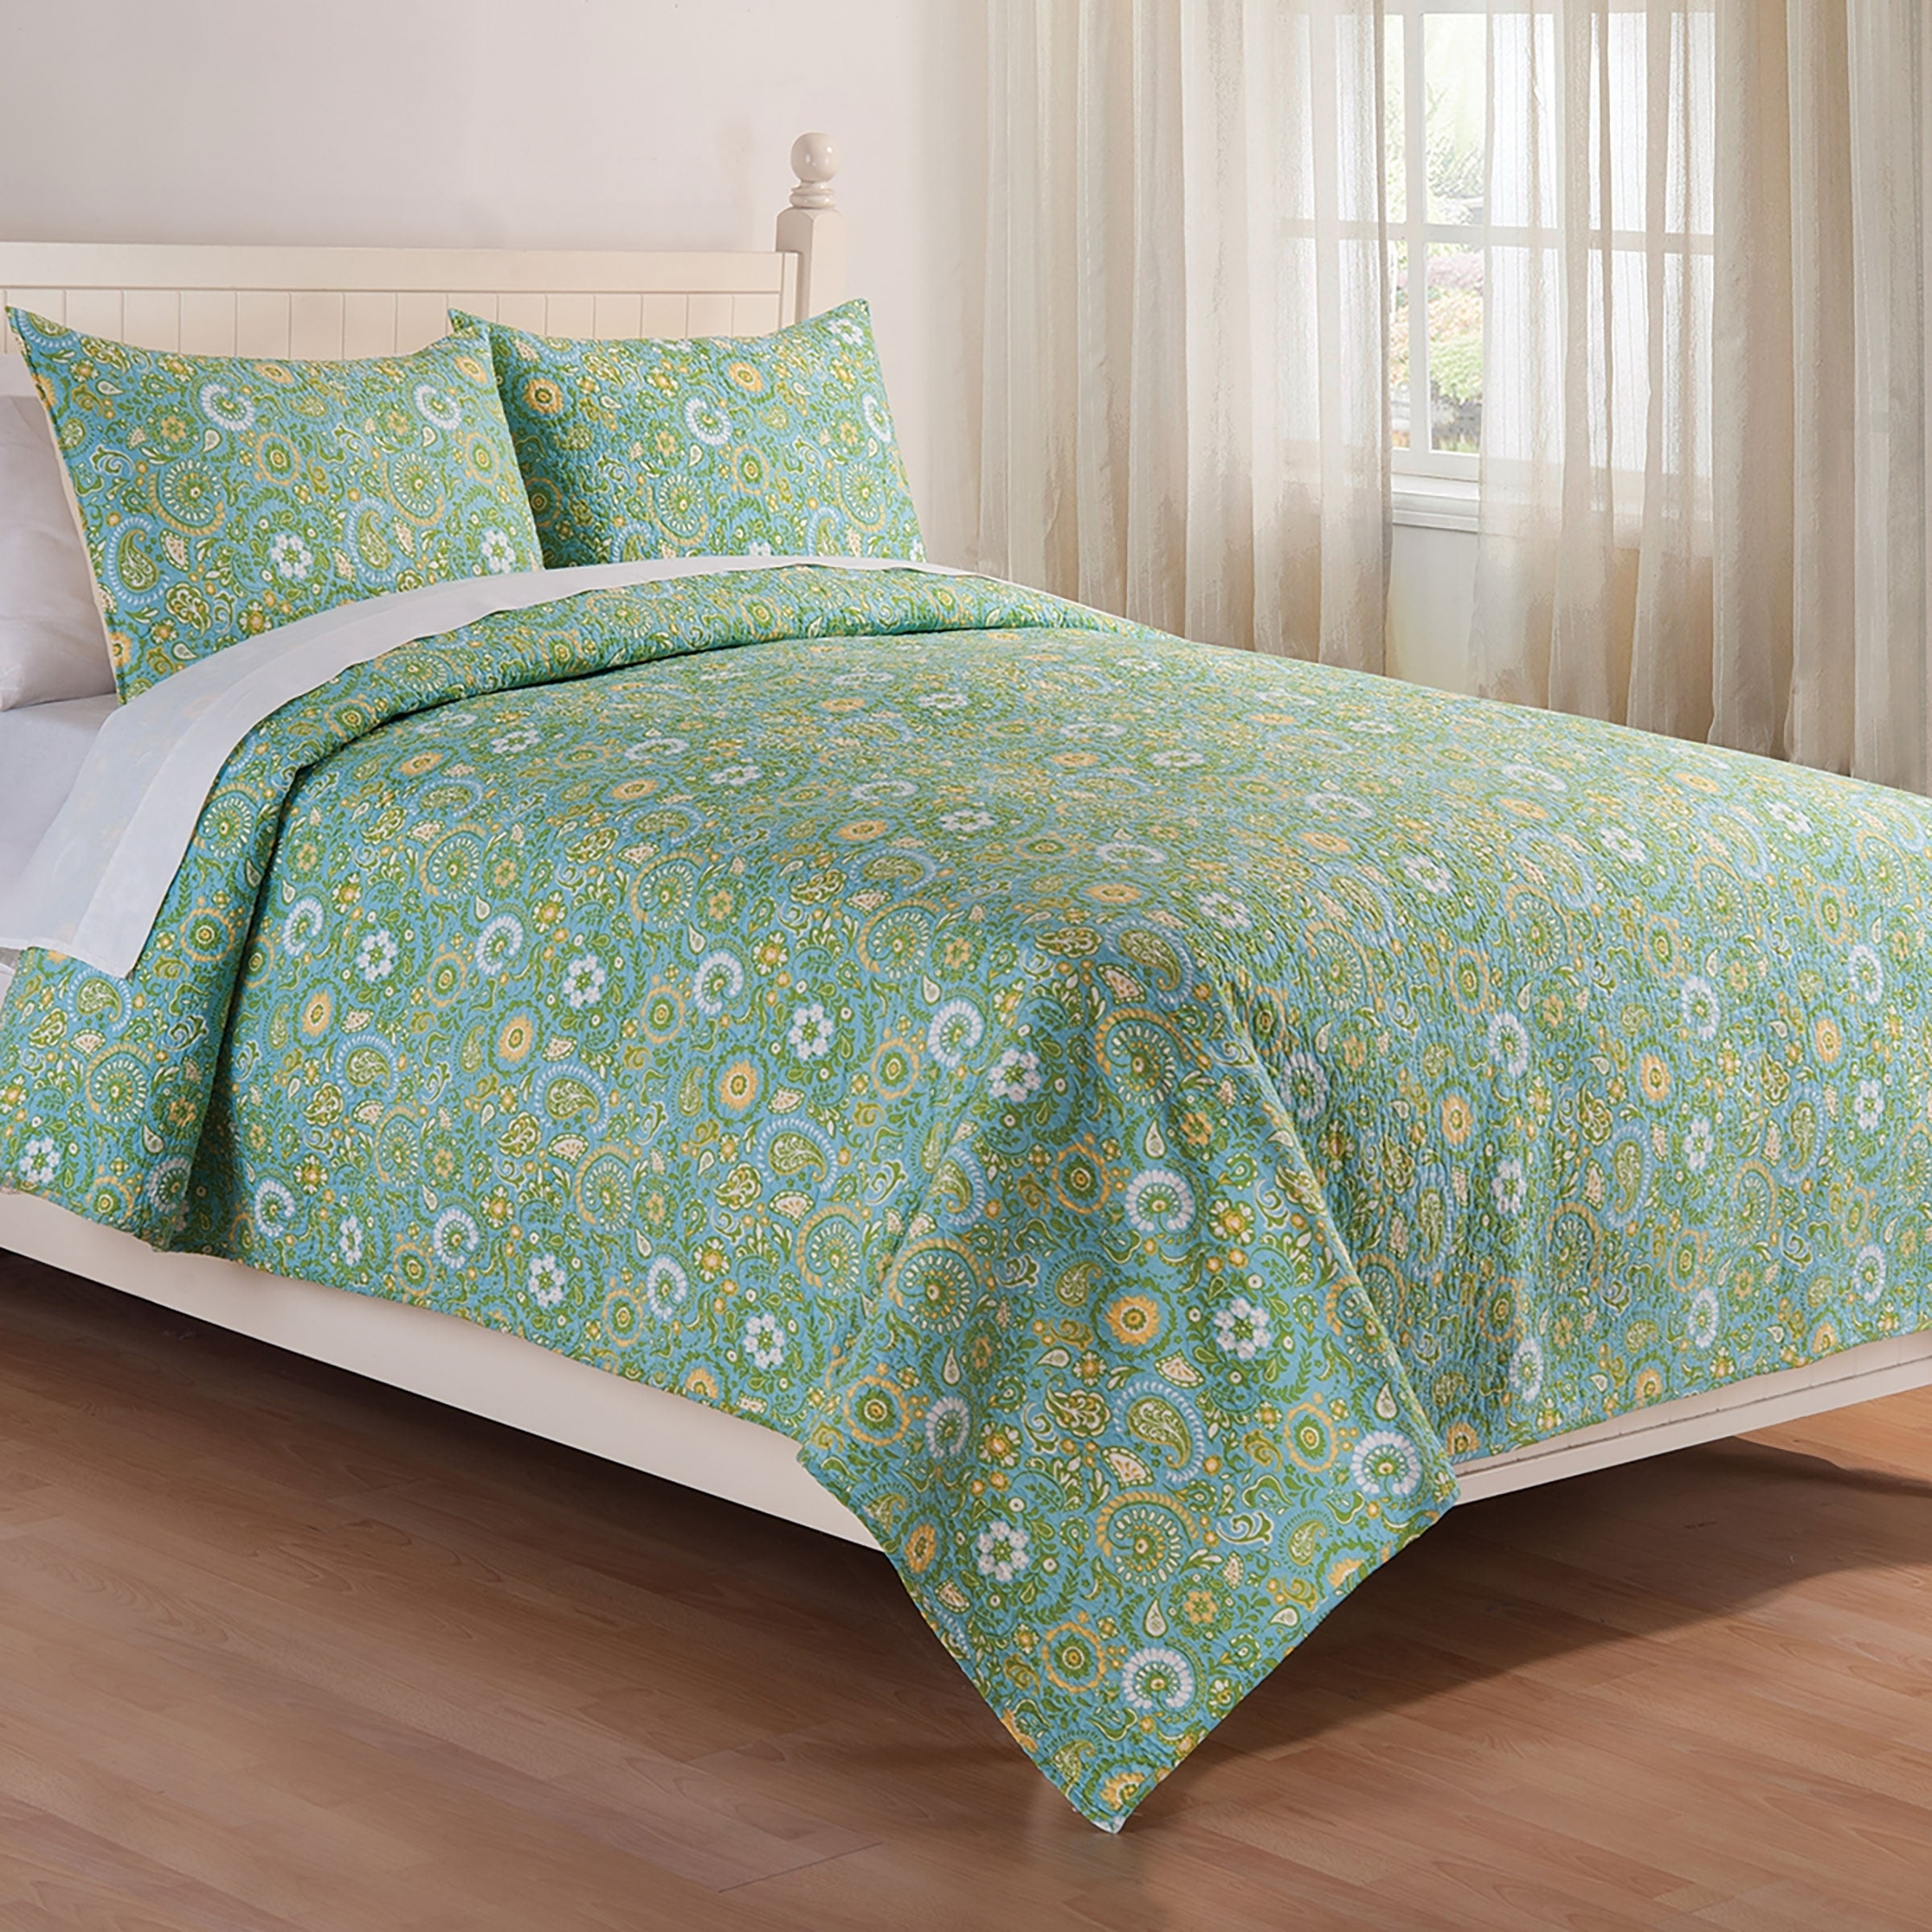 Shop samara 3 piece full queen size quilt set on sale free shipping today overstock com 12223163